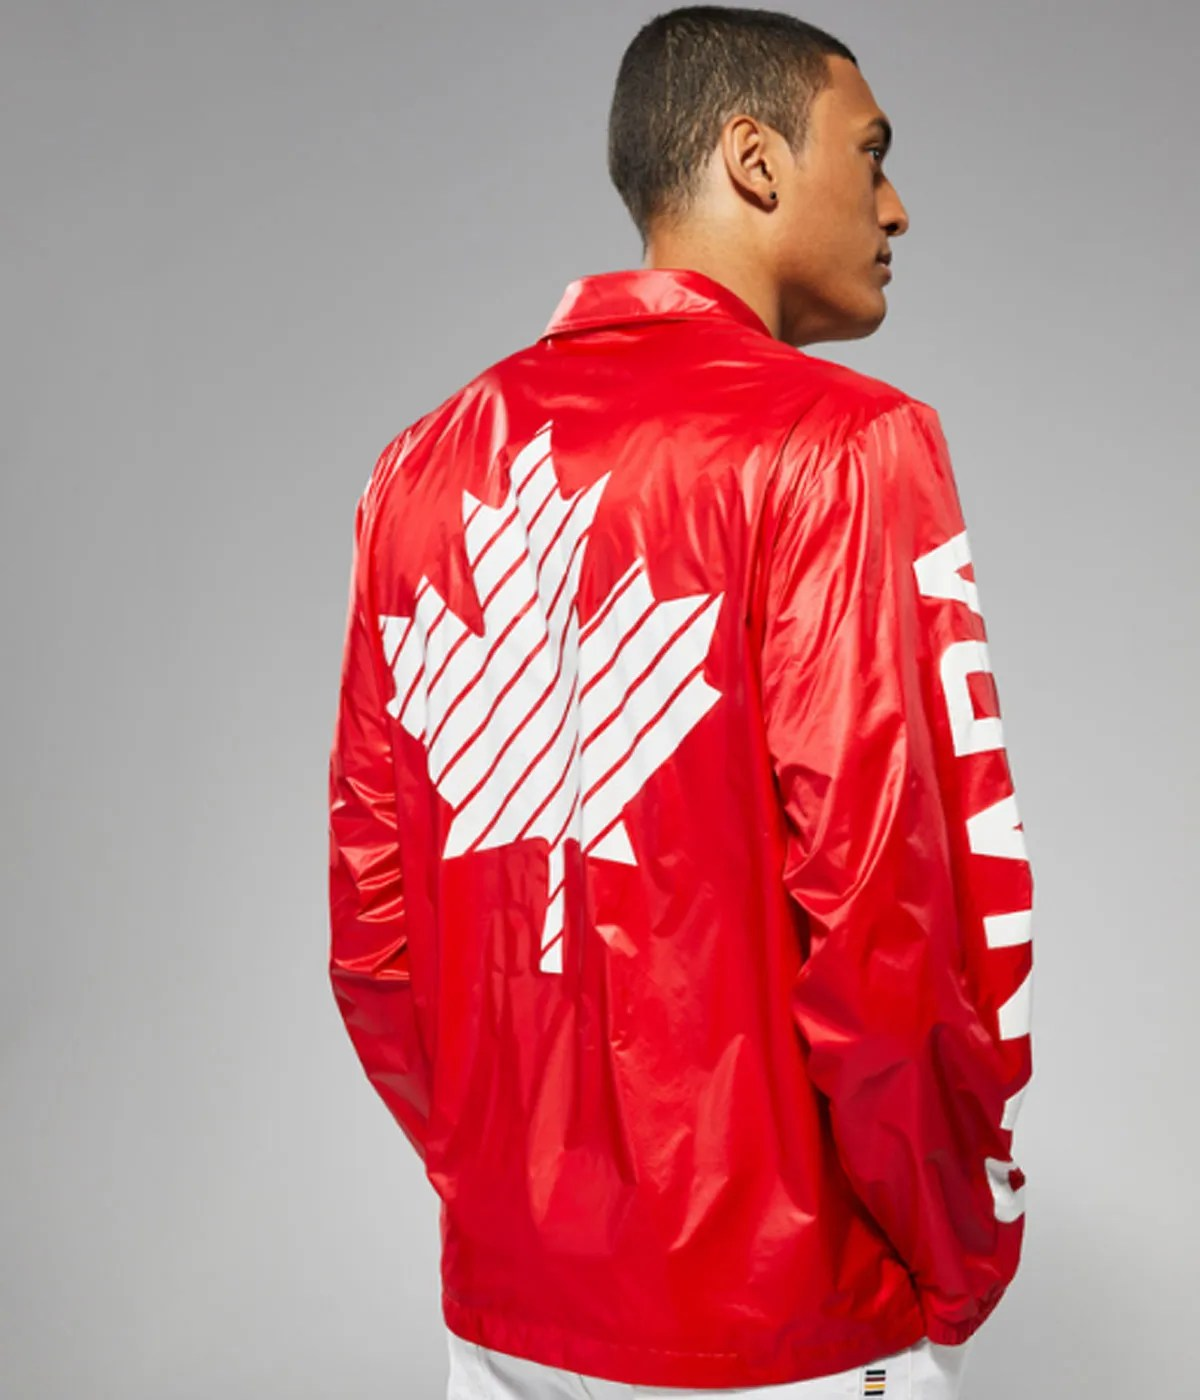 the-olympic-canada-printed-jacket